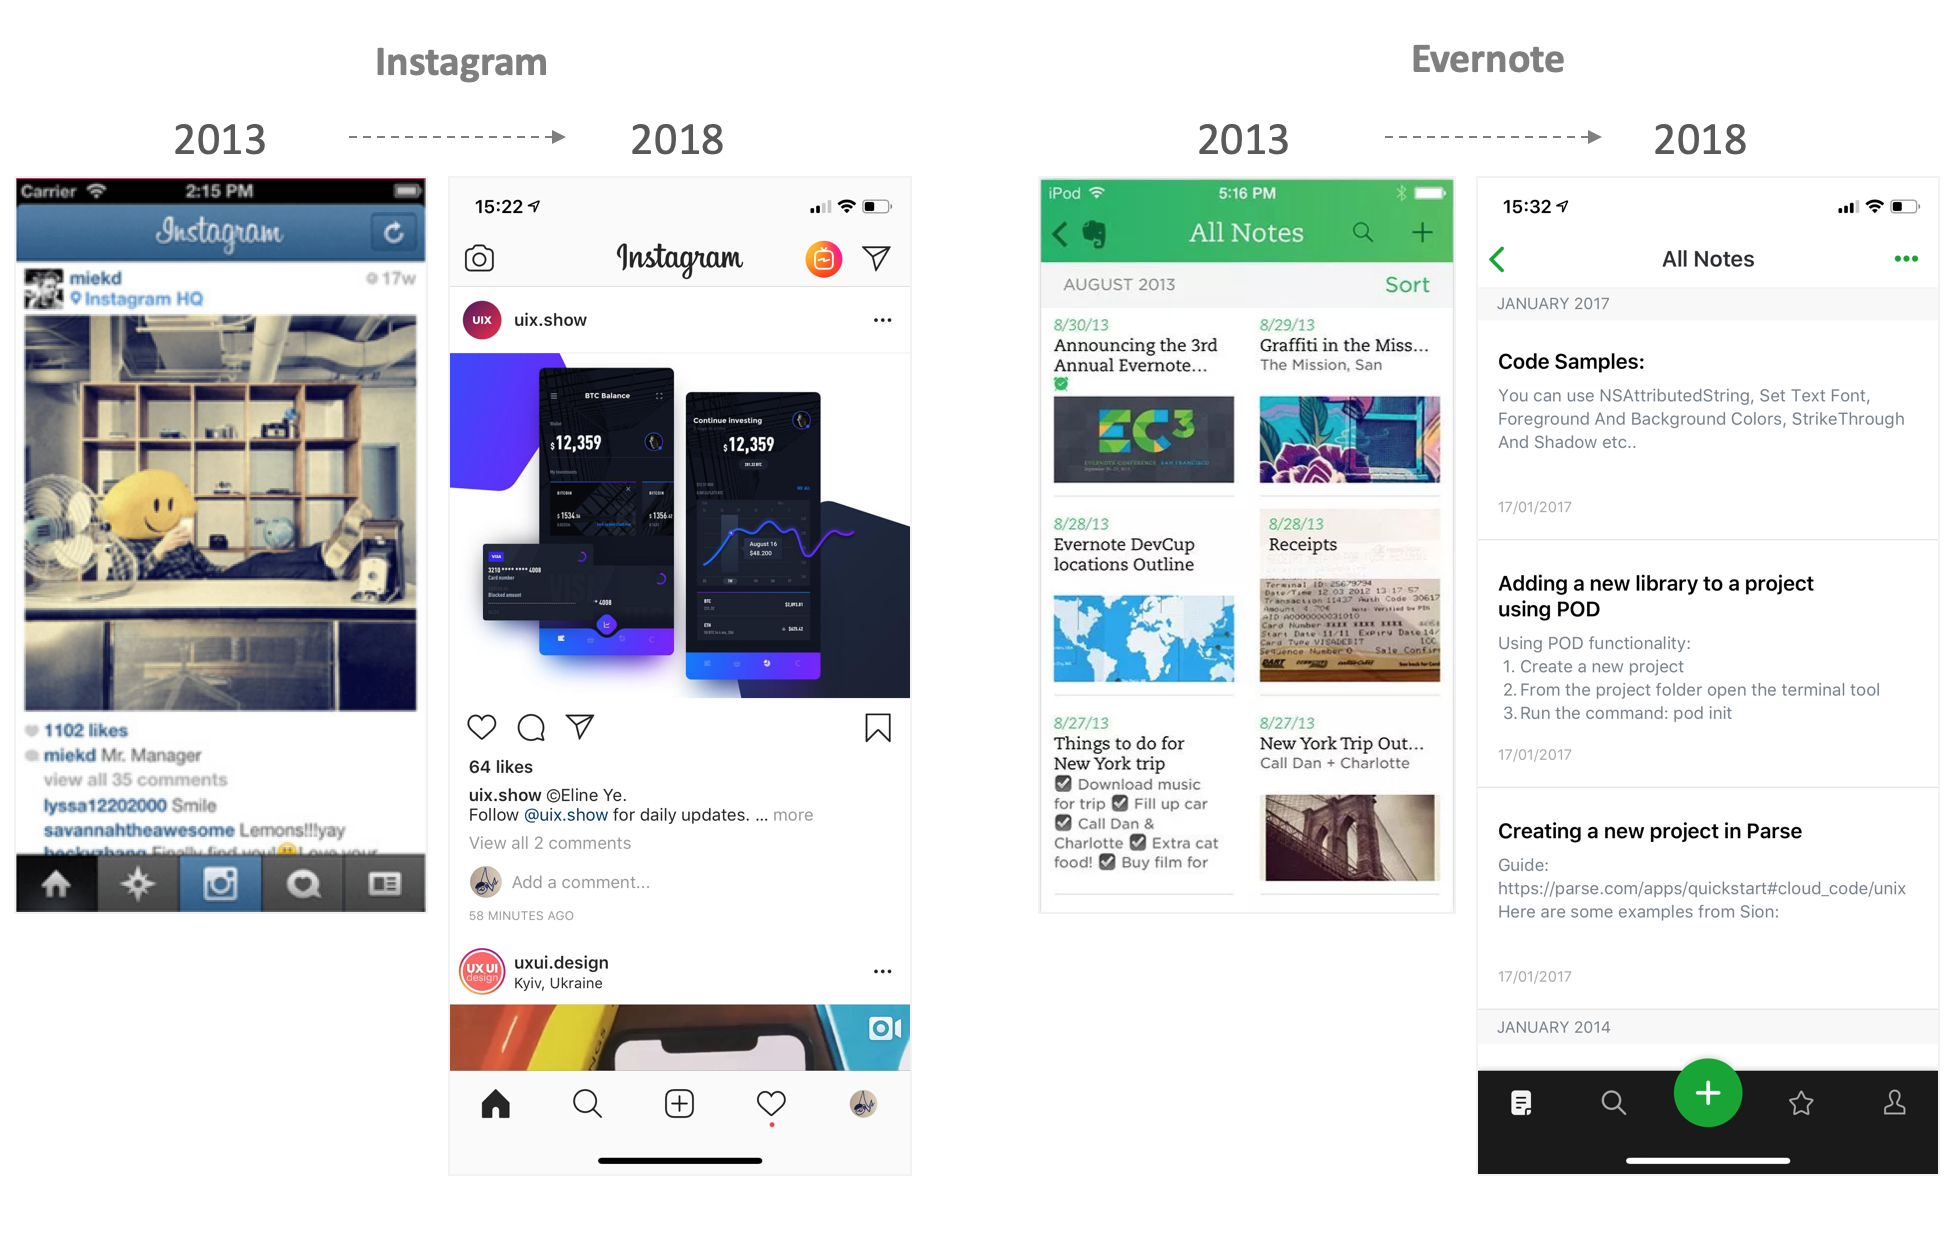 The brand goes behind the scenes - mobile design trends